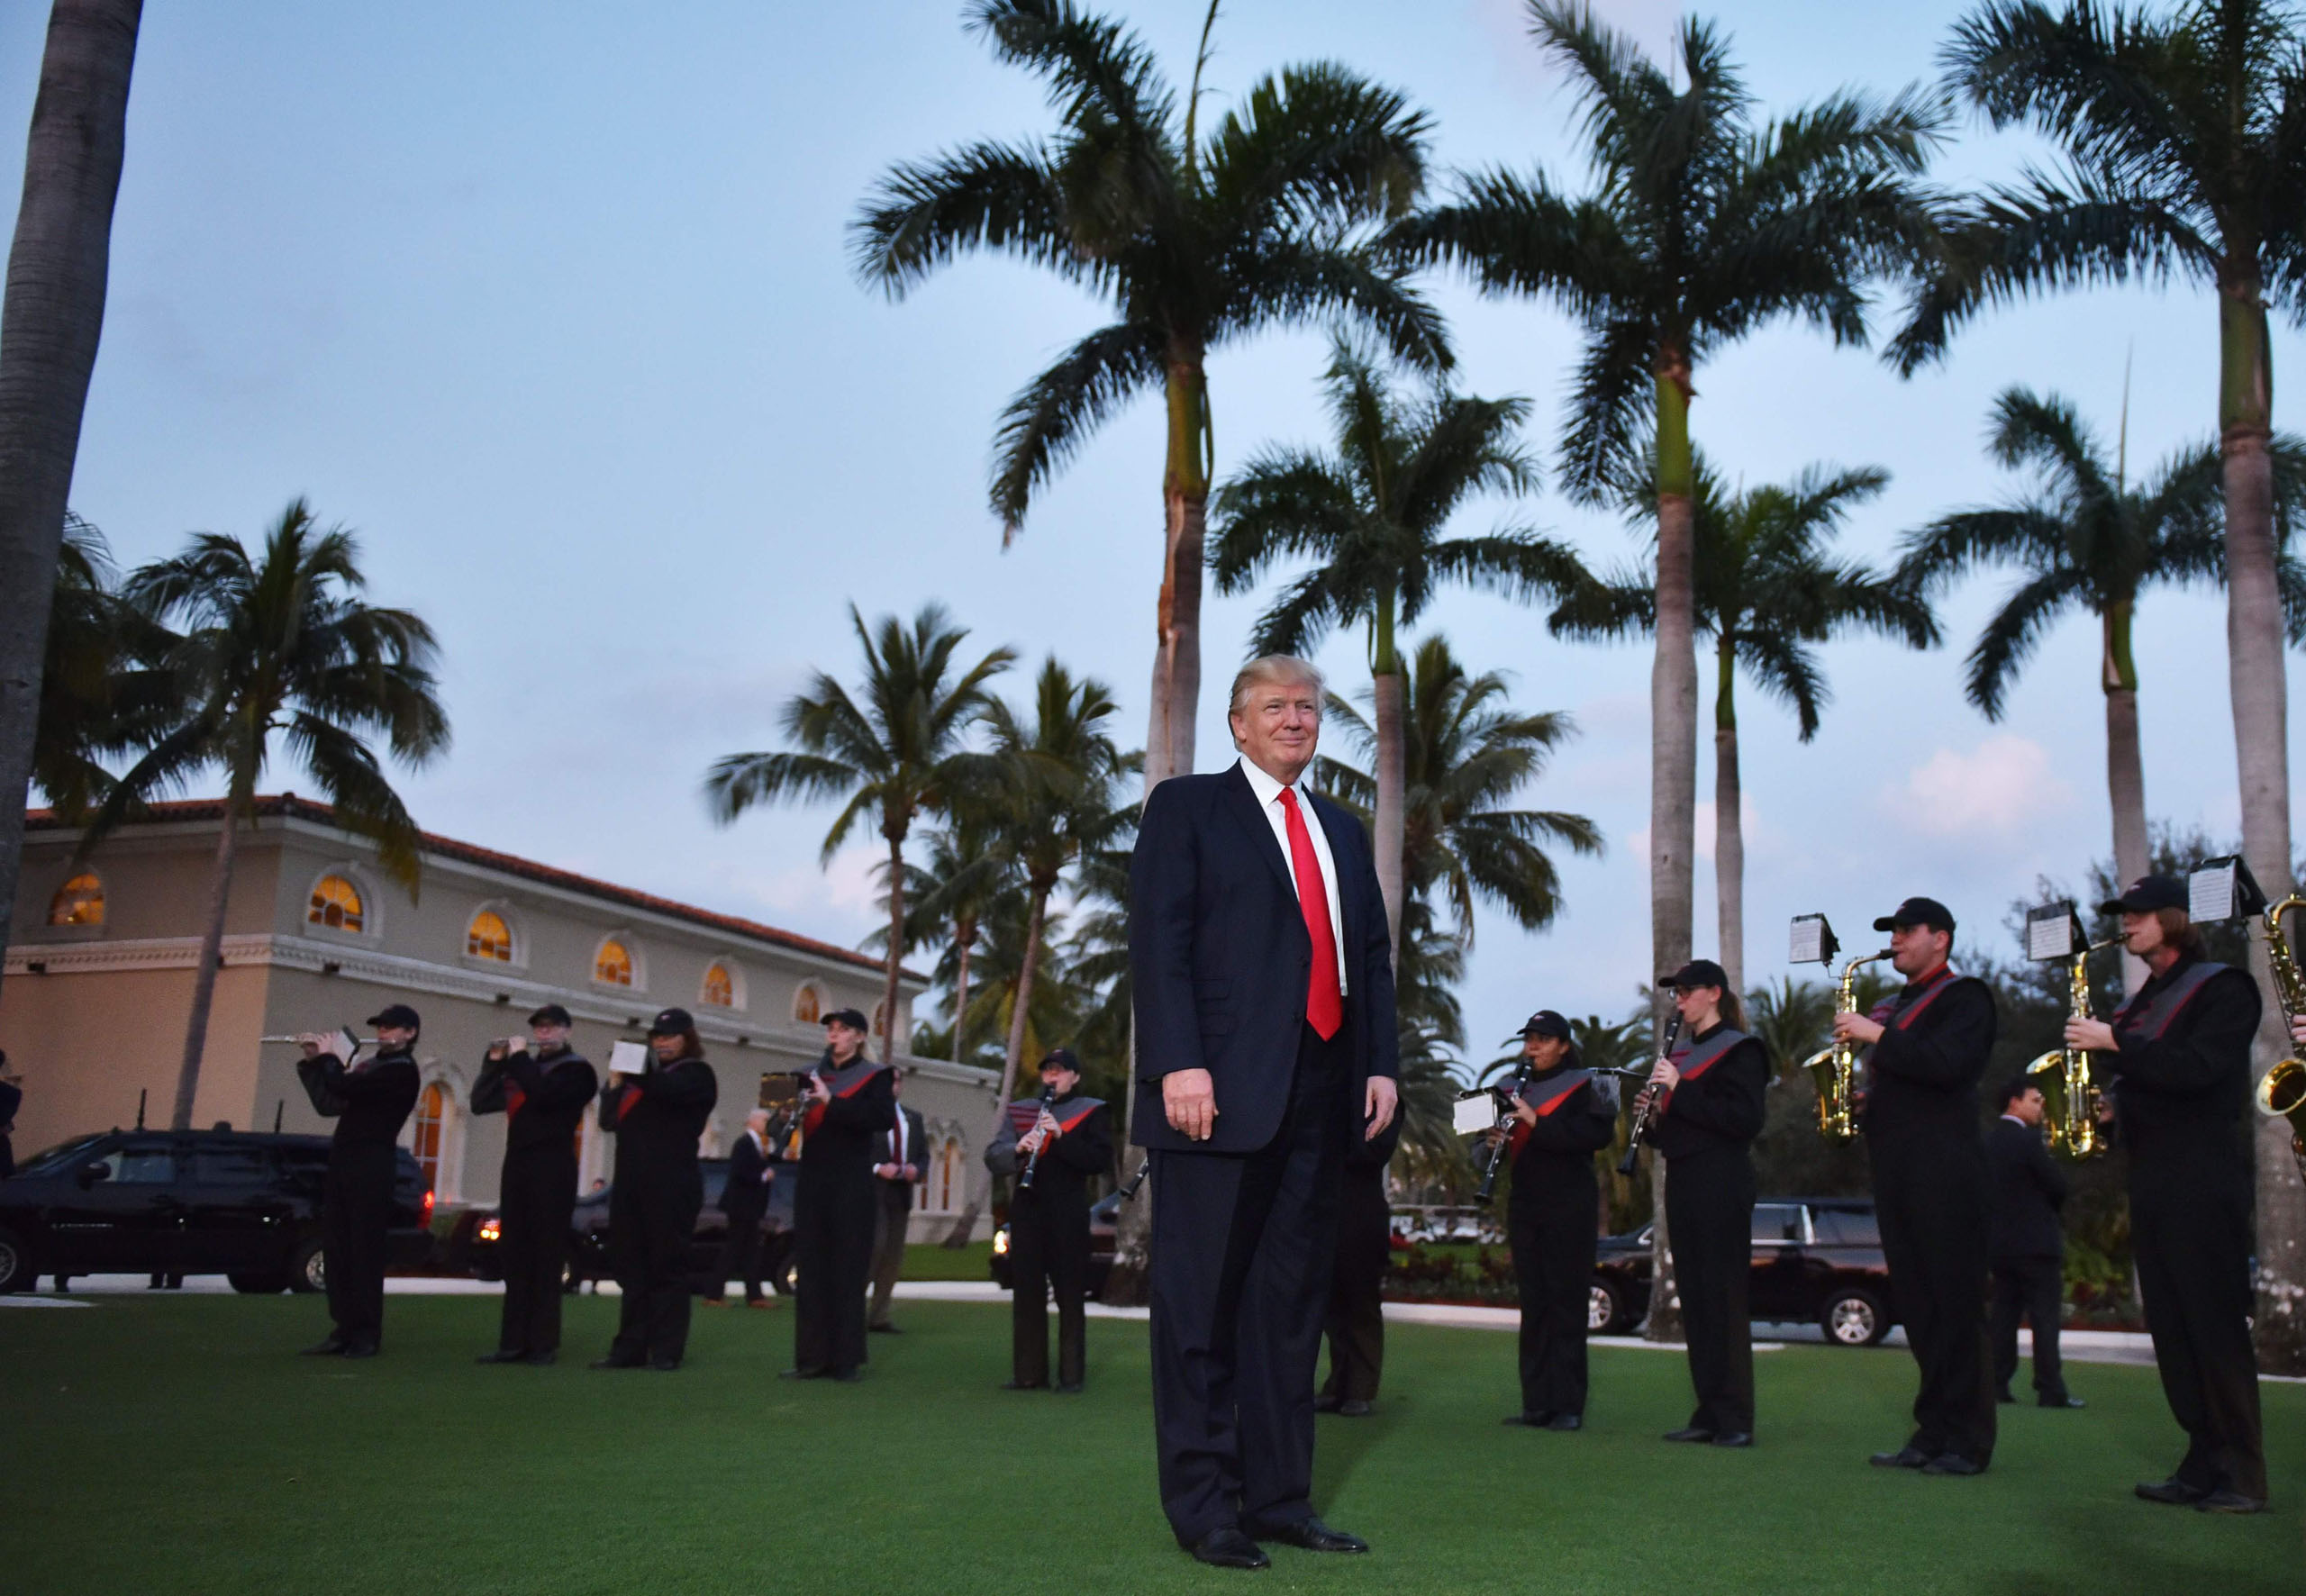 President Donald Trump watches the Palm Beach Central High School marching band which greeted him as he arrived to watch the Super Bowl at Trump International Golf Club Palm Beach in West Palm Beach, Florida on Feb. 5, 2017.